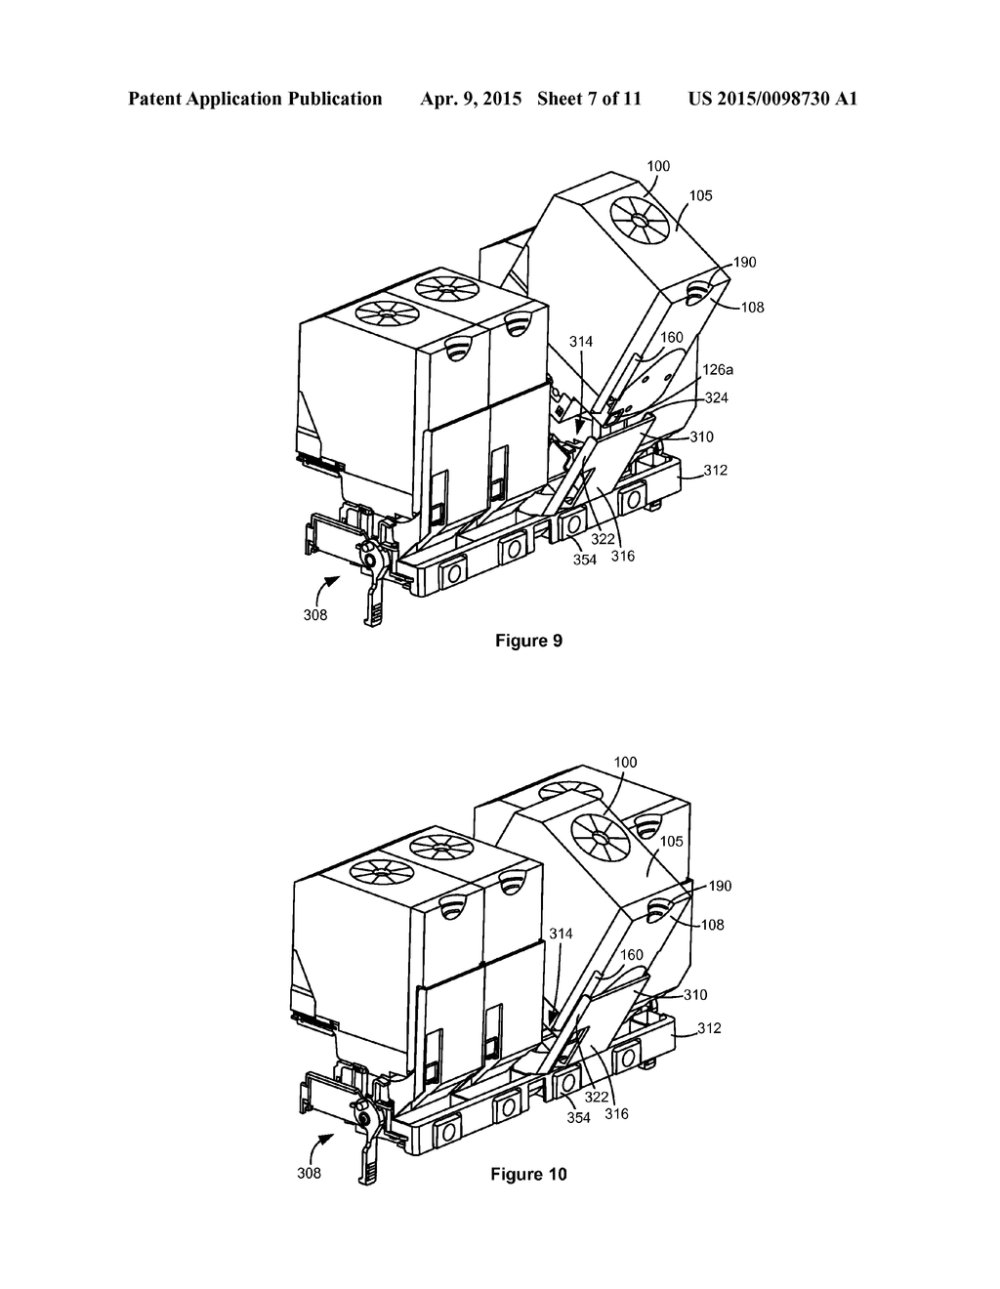 medium resolution of carriage assembly for toner cartridge loading and latching diagram schematic and image 08